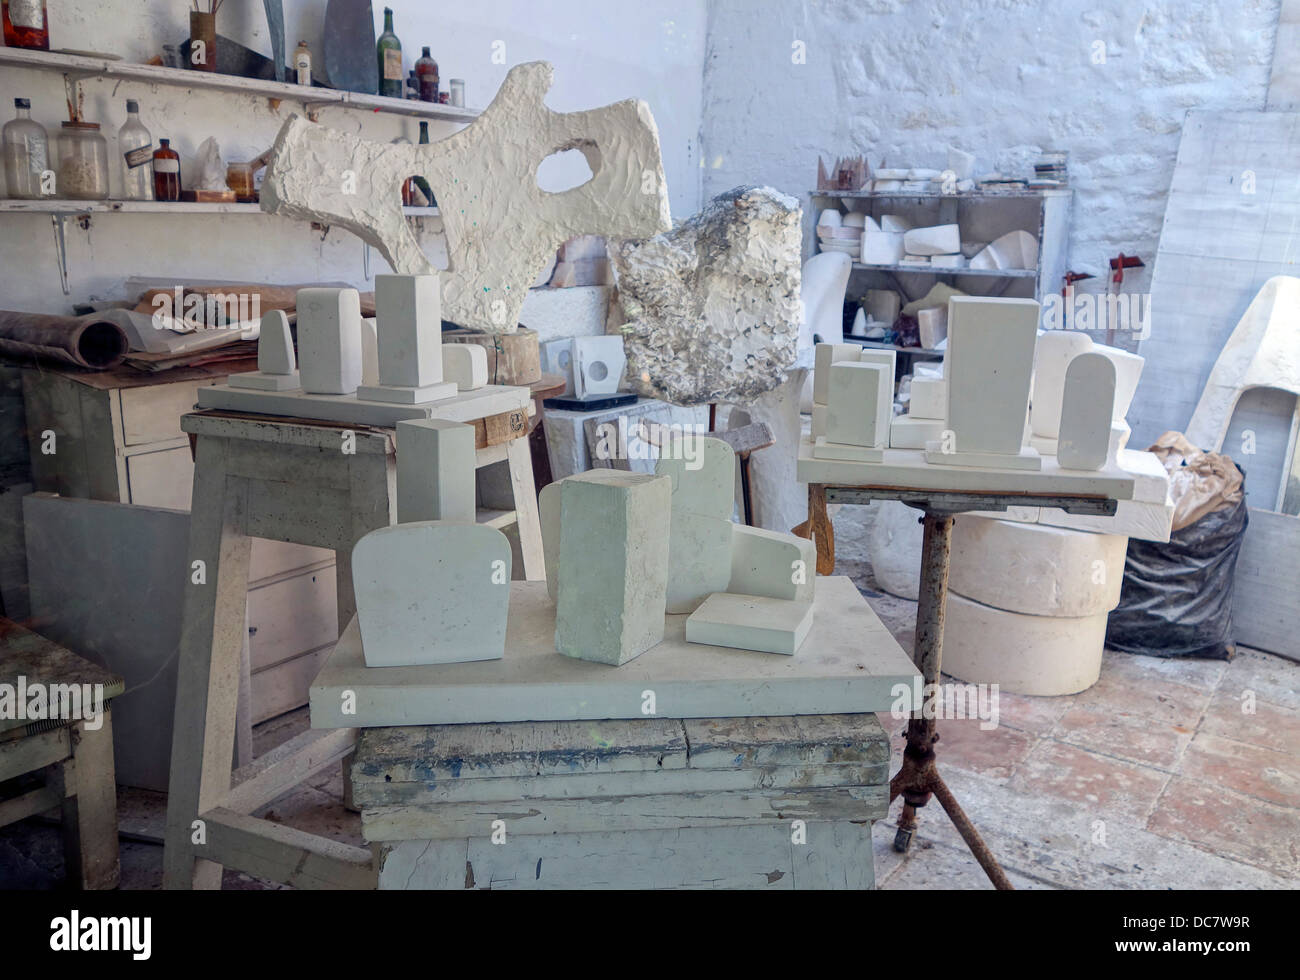 The studio at The Barbara Hepworth Museum in St.Ives, Cornwall, UK - Stock Image